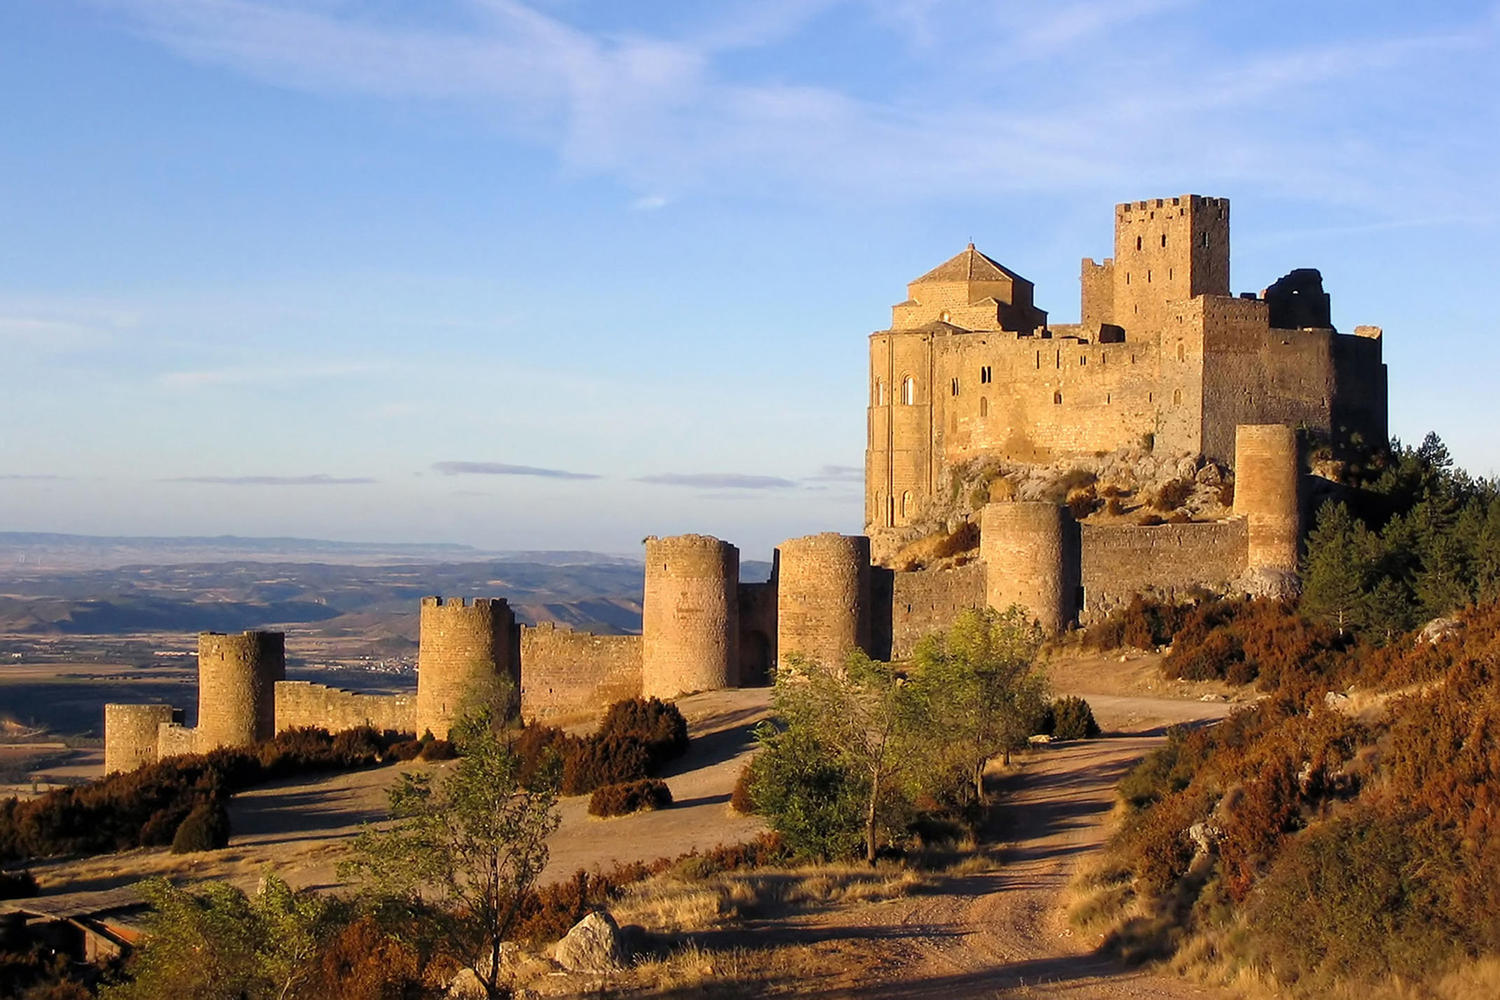 The impressive fortress of Loarre